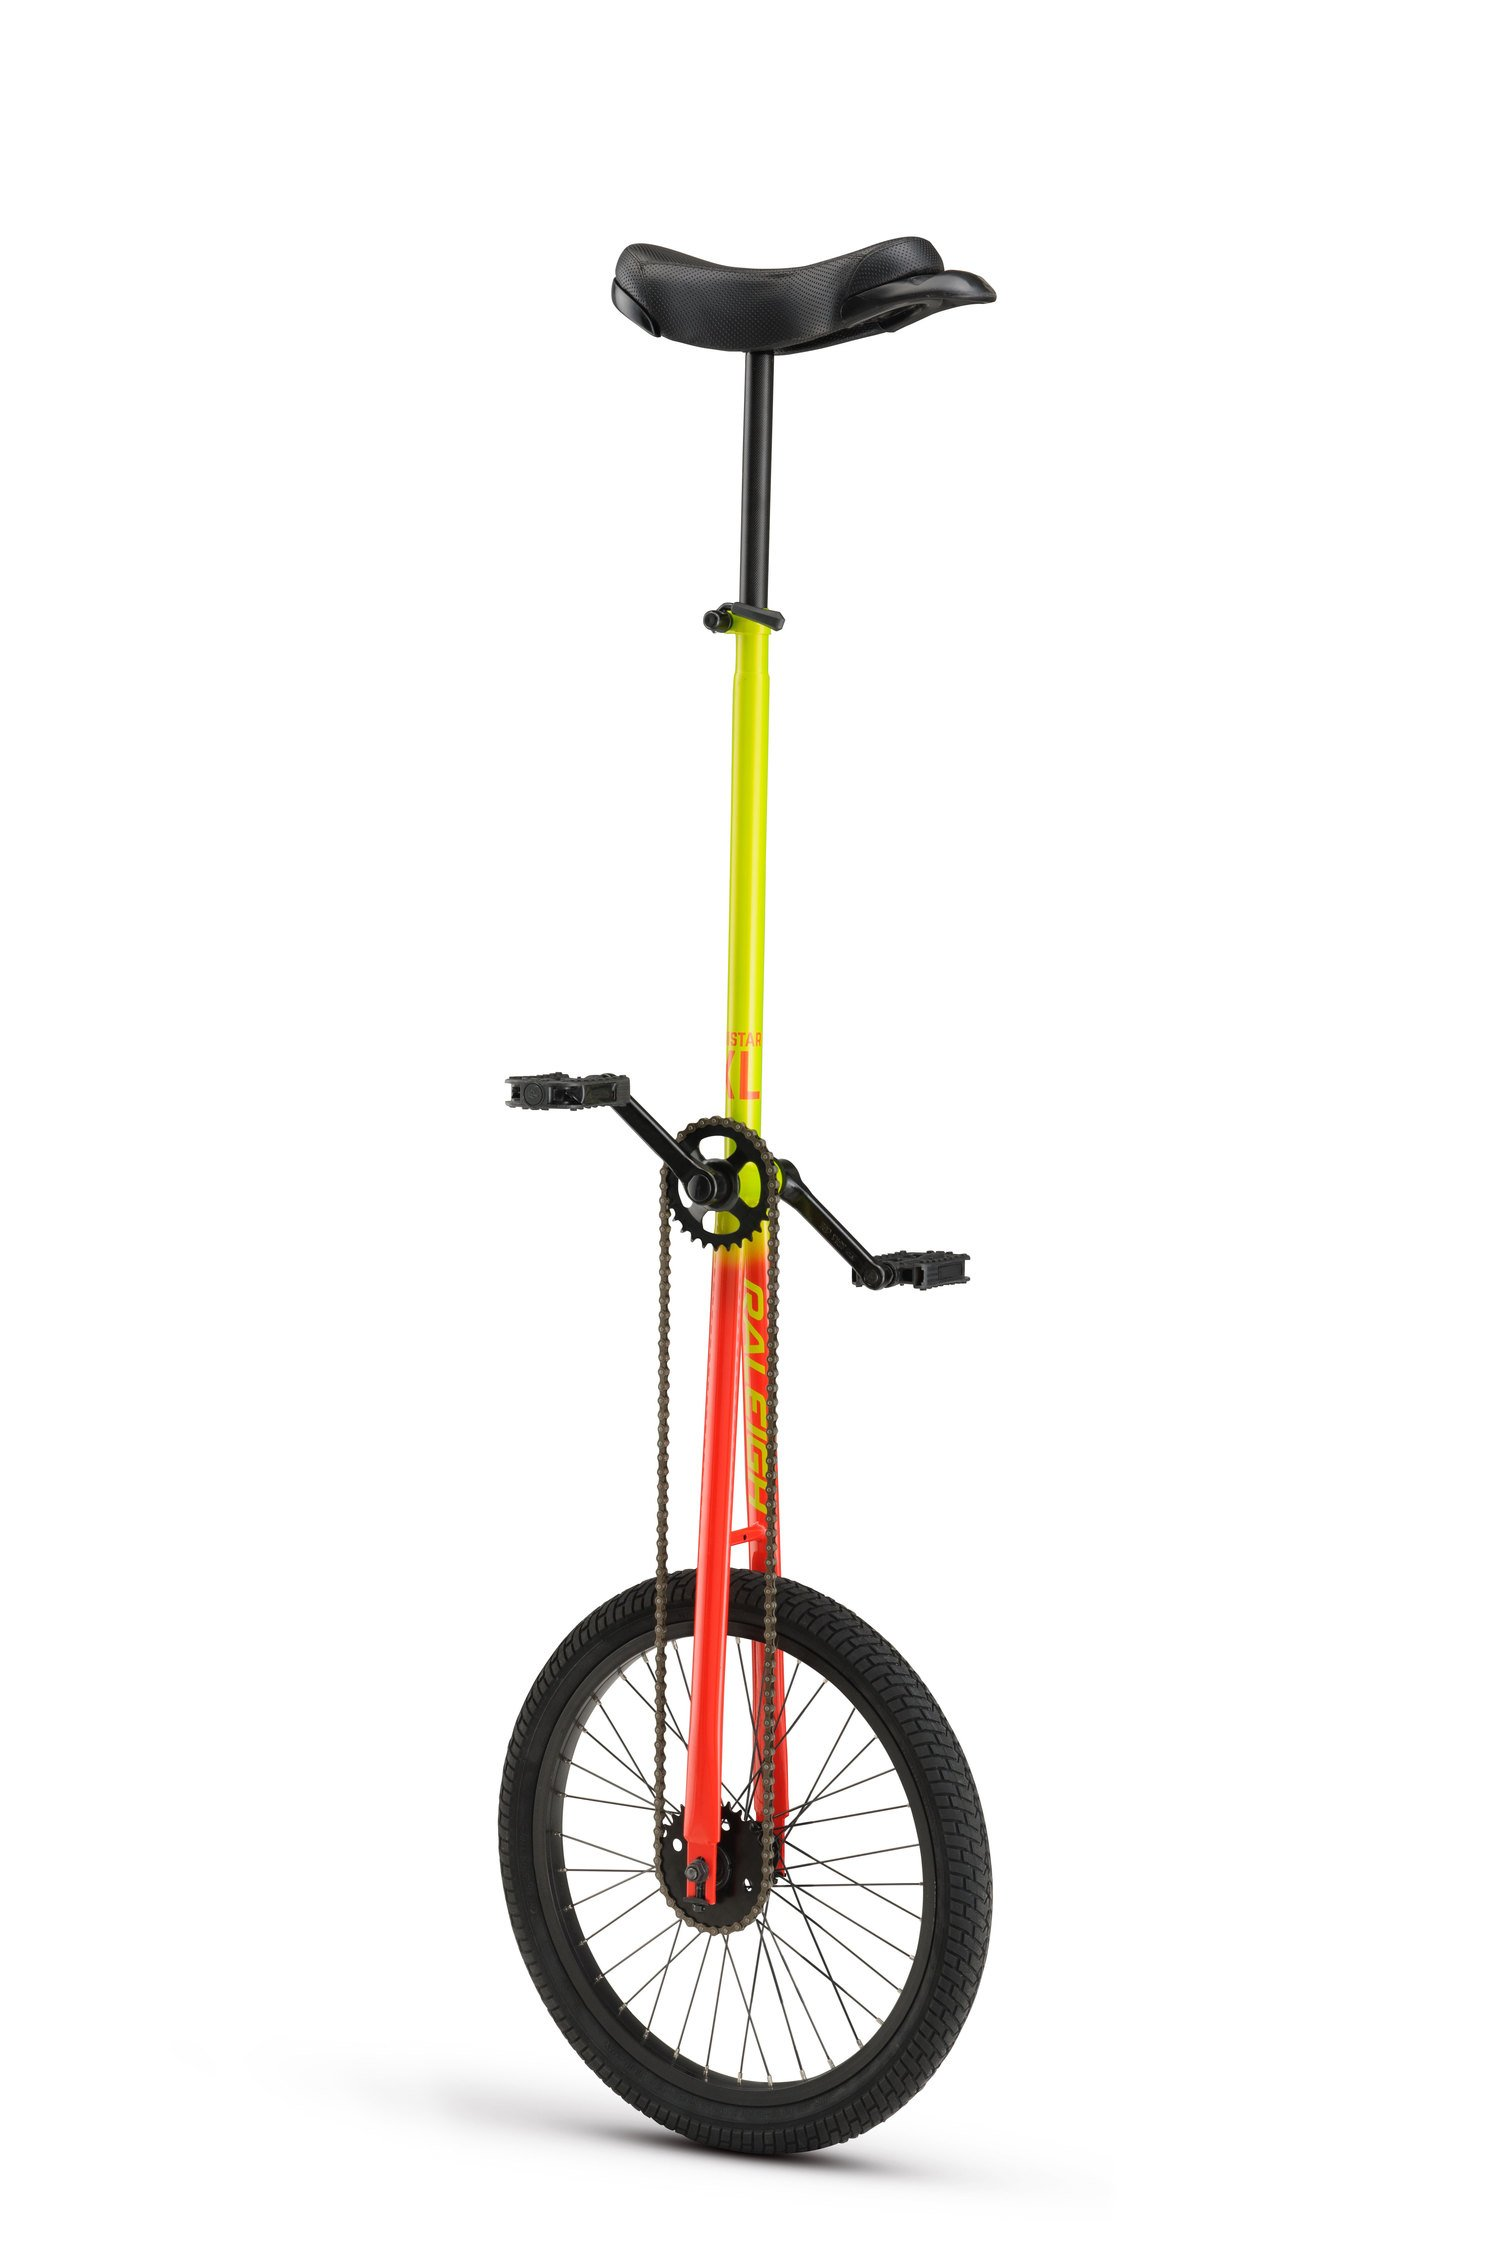 RALEIGH Unistar XL 20, 20inch Wheel Unicycle, Yellow by RALEIGH